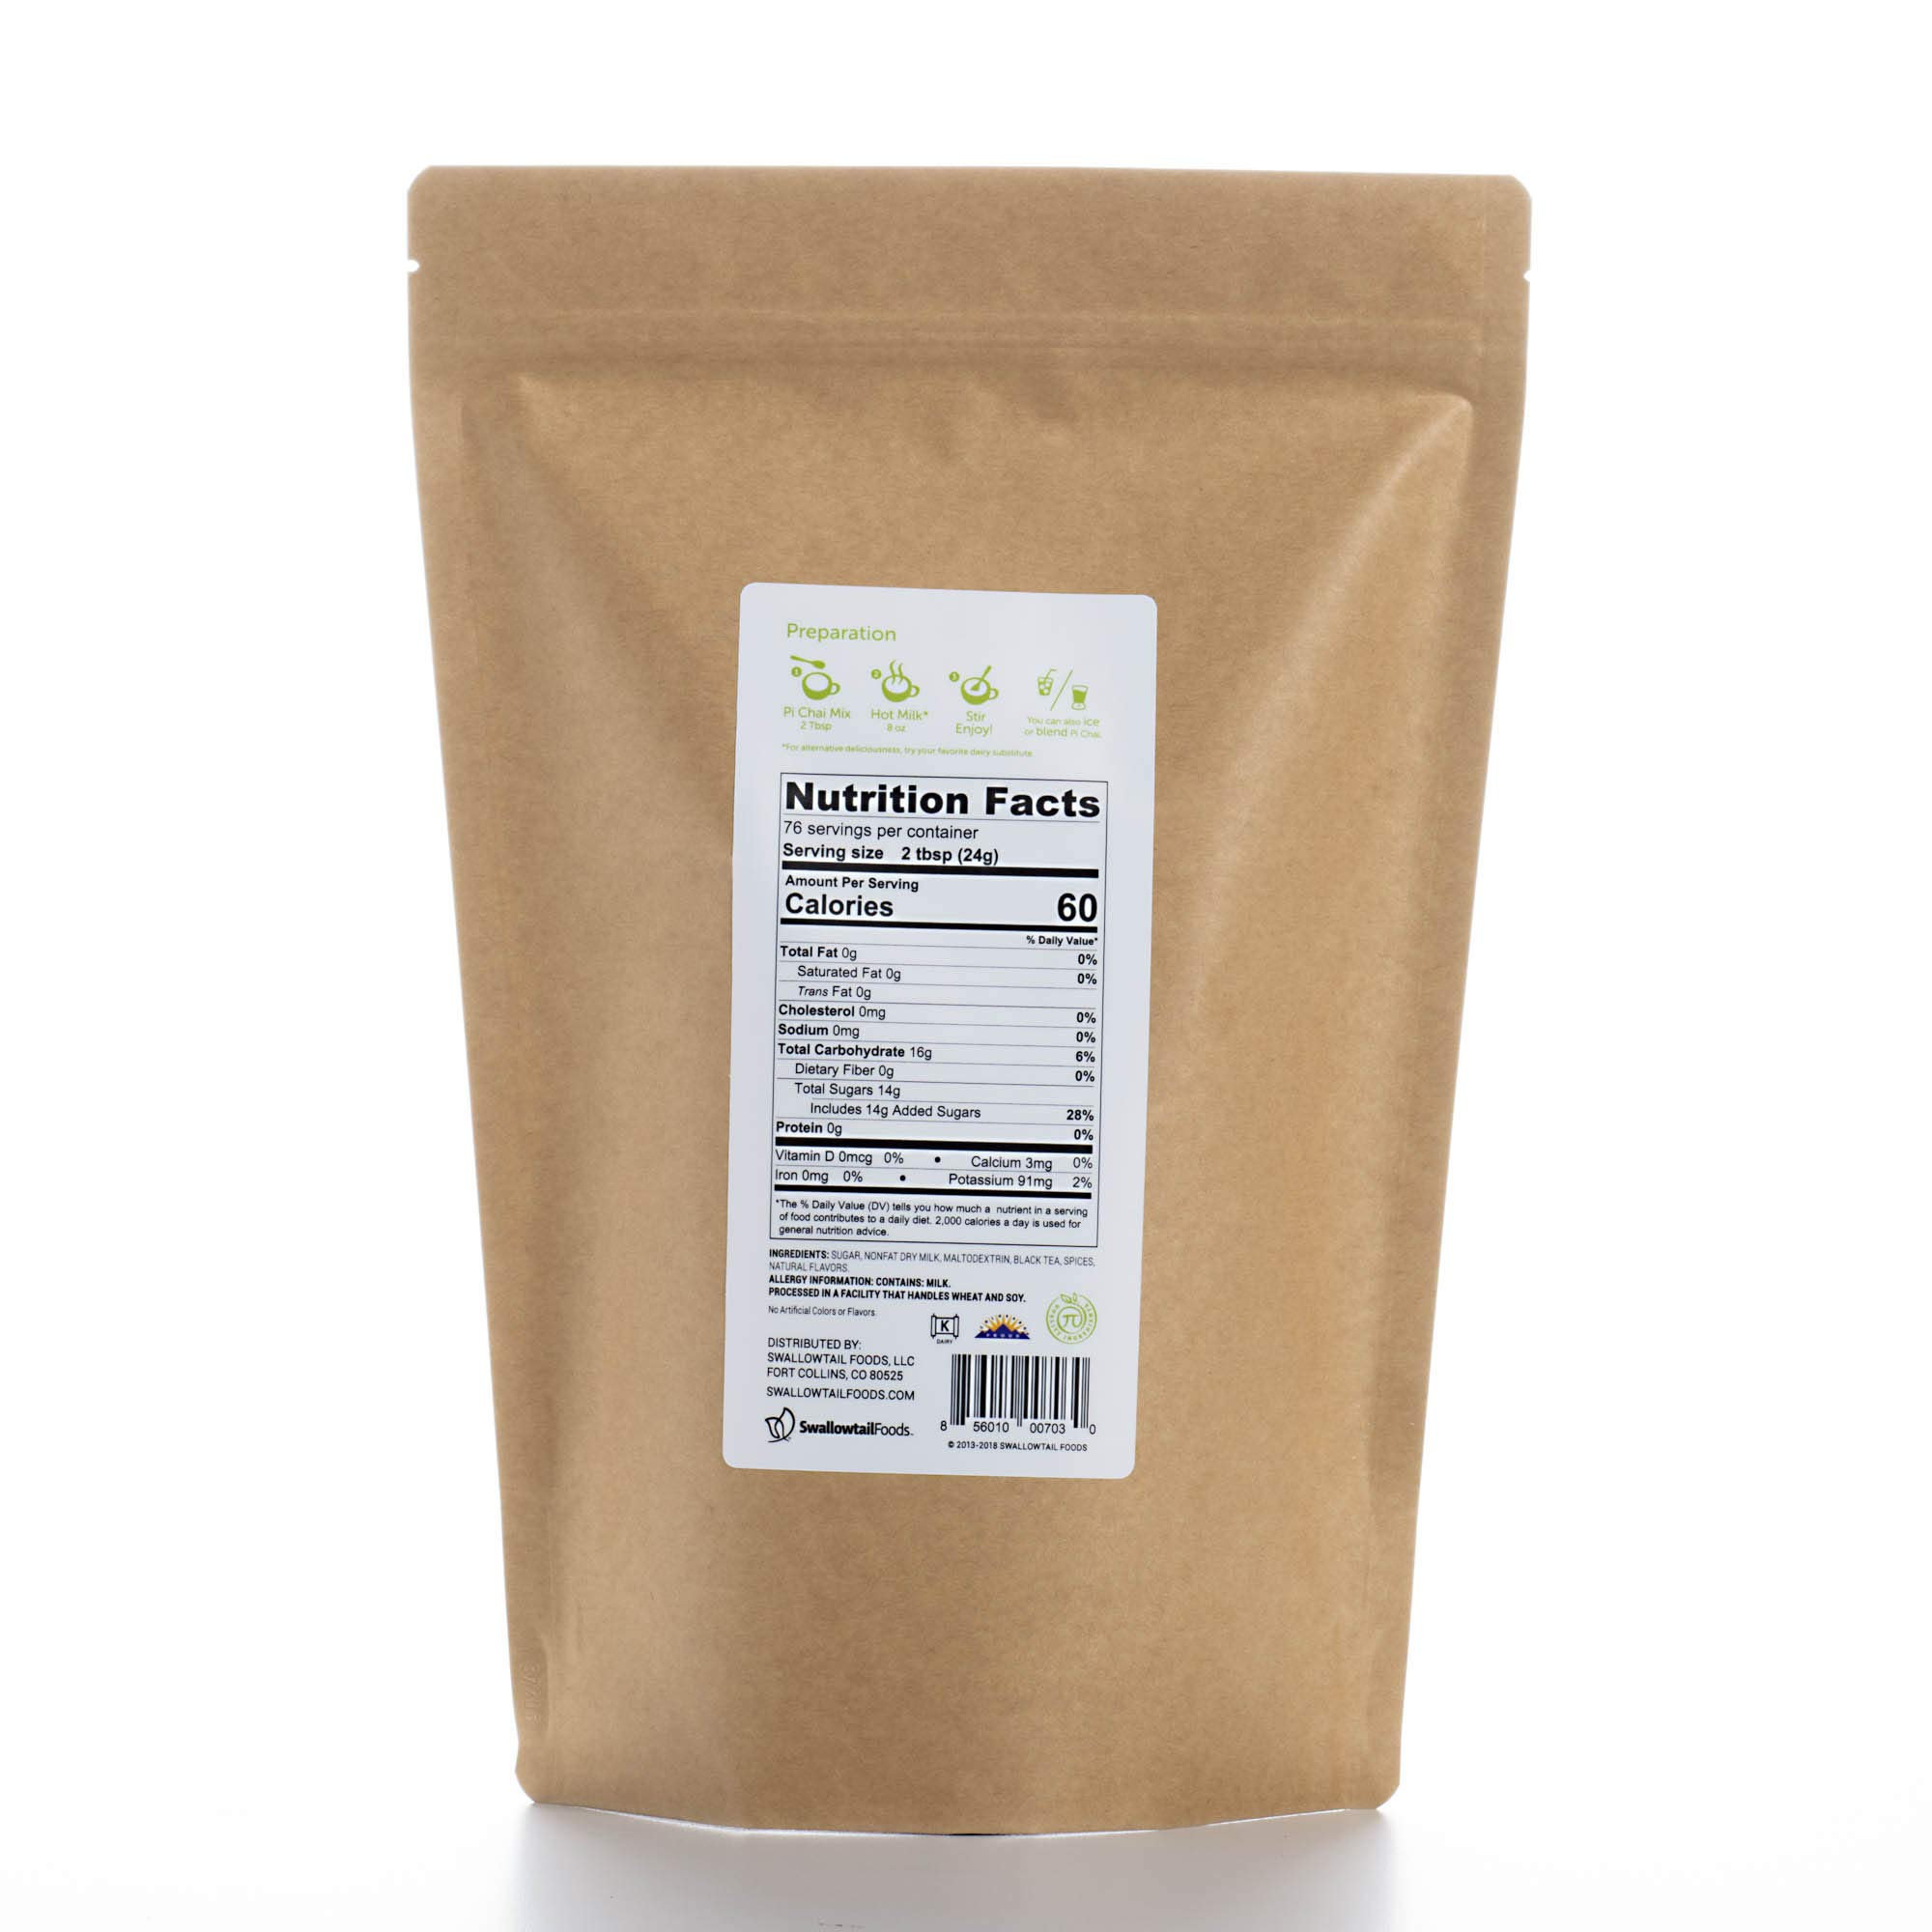 Pi Chai Original, Chai Tea Latte Mix, Black Tea, Exotic Spices, 4.02 Pound by Pi Chai (Image #2)